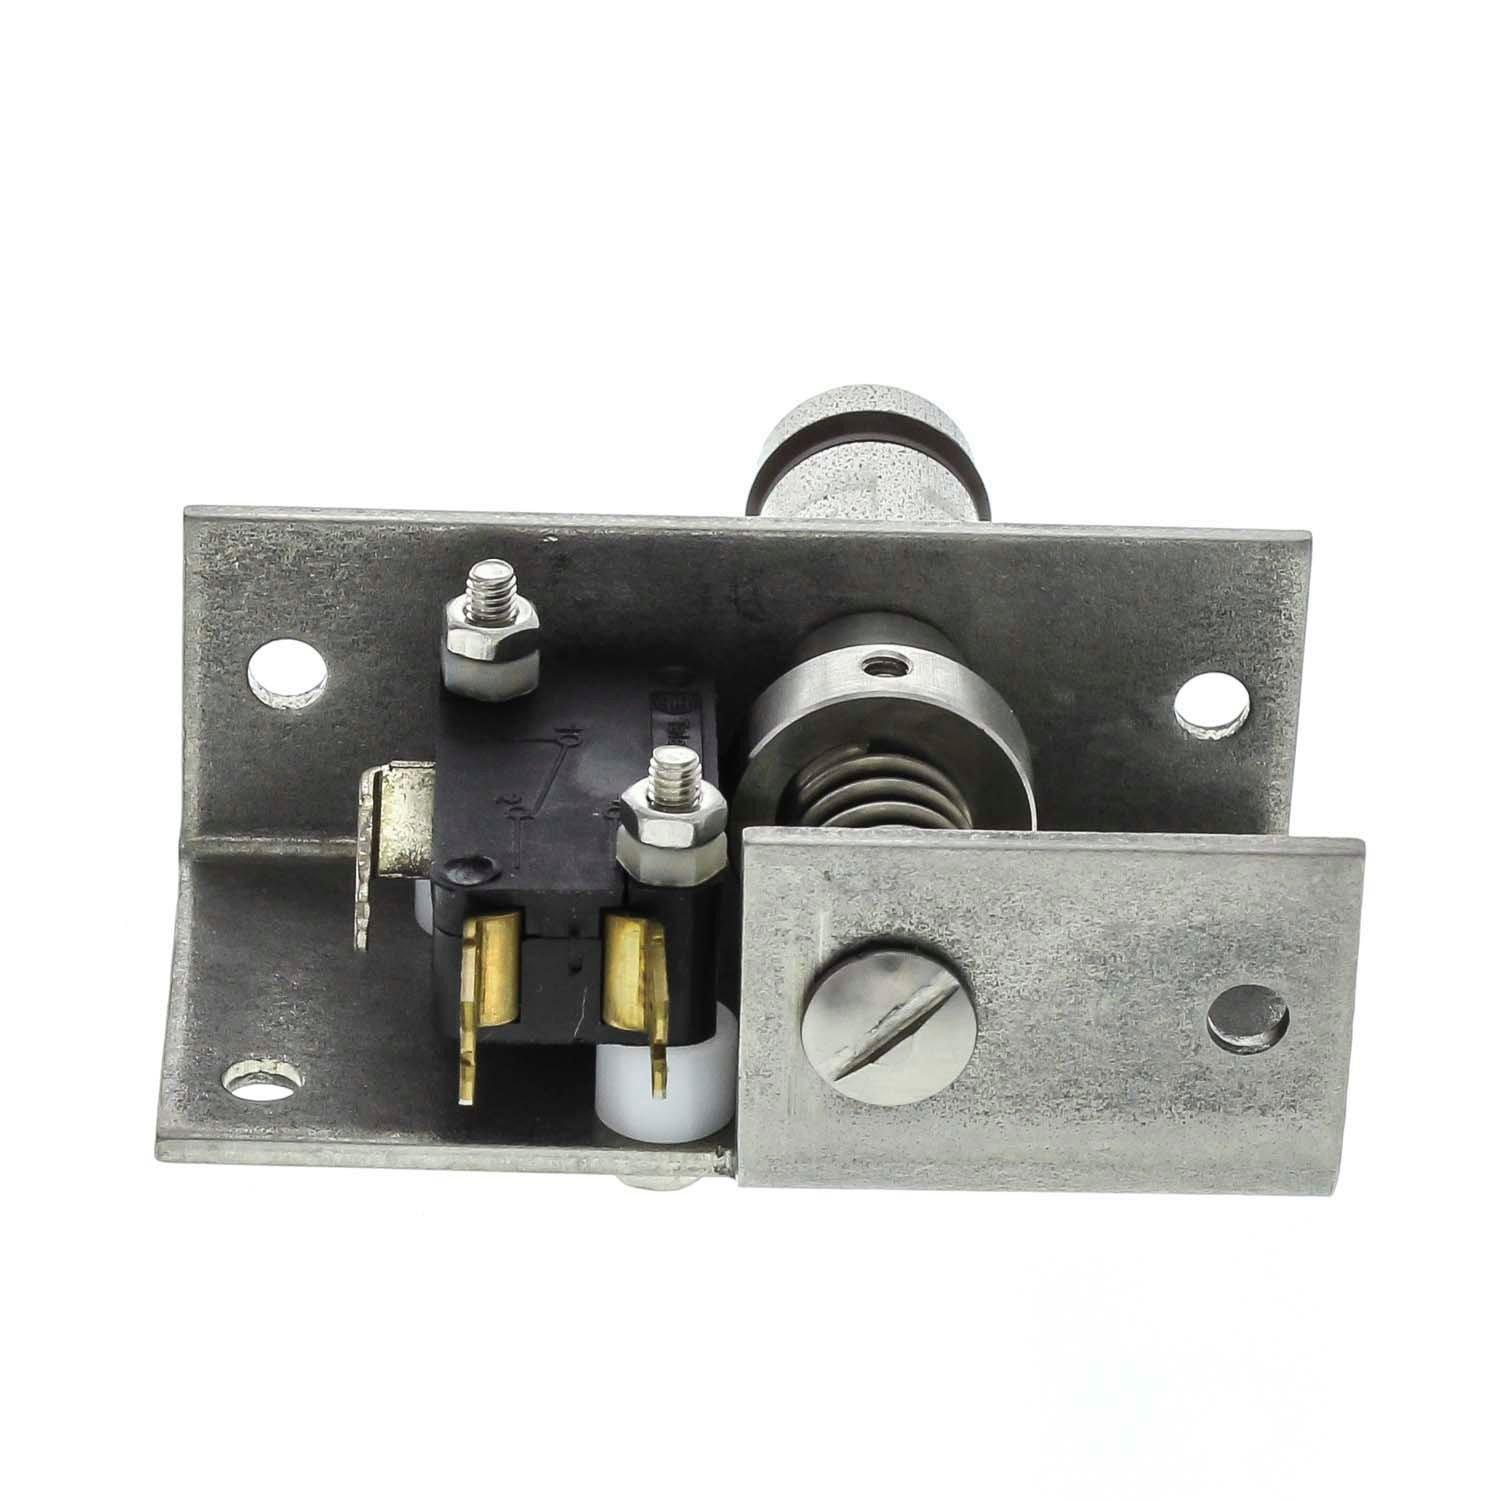 ROBOT COUPE R10/R20 S5 CONTACT SWITCH